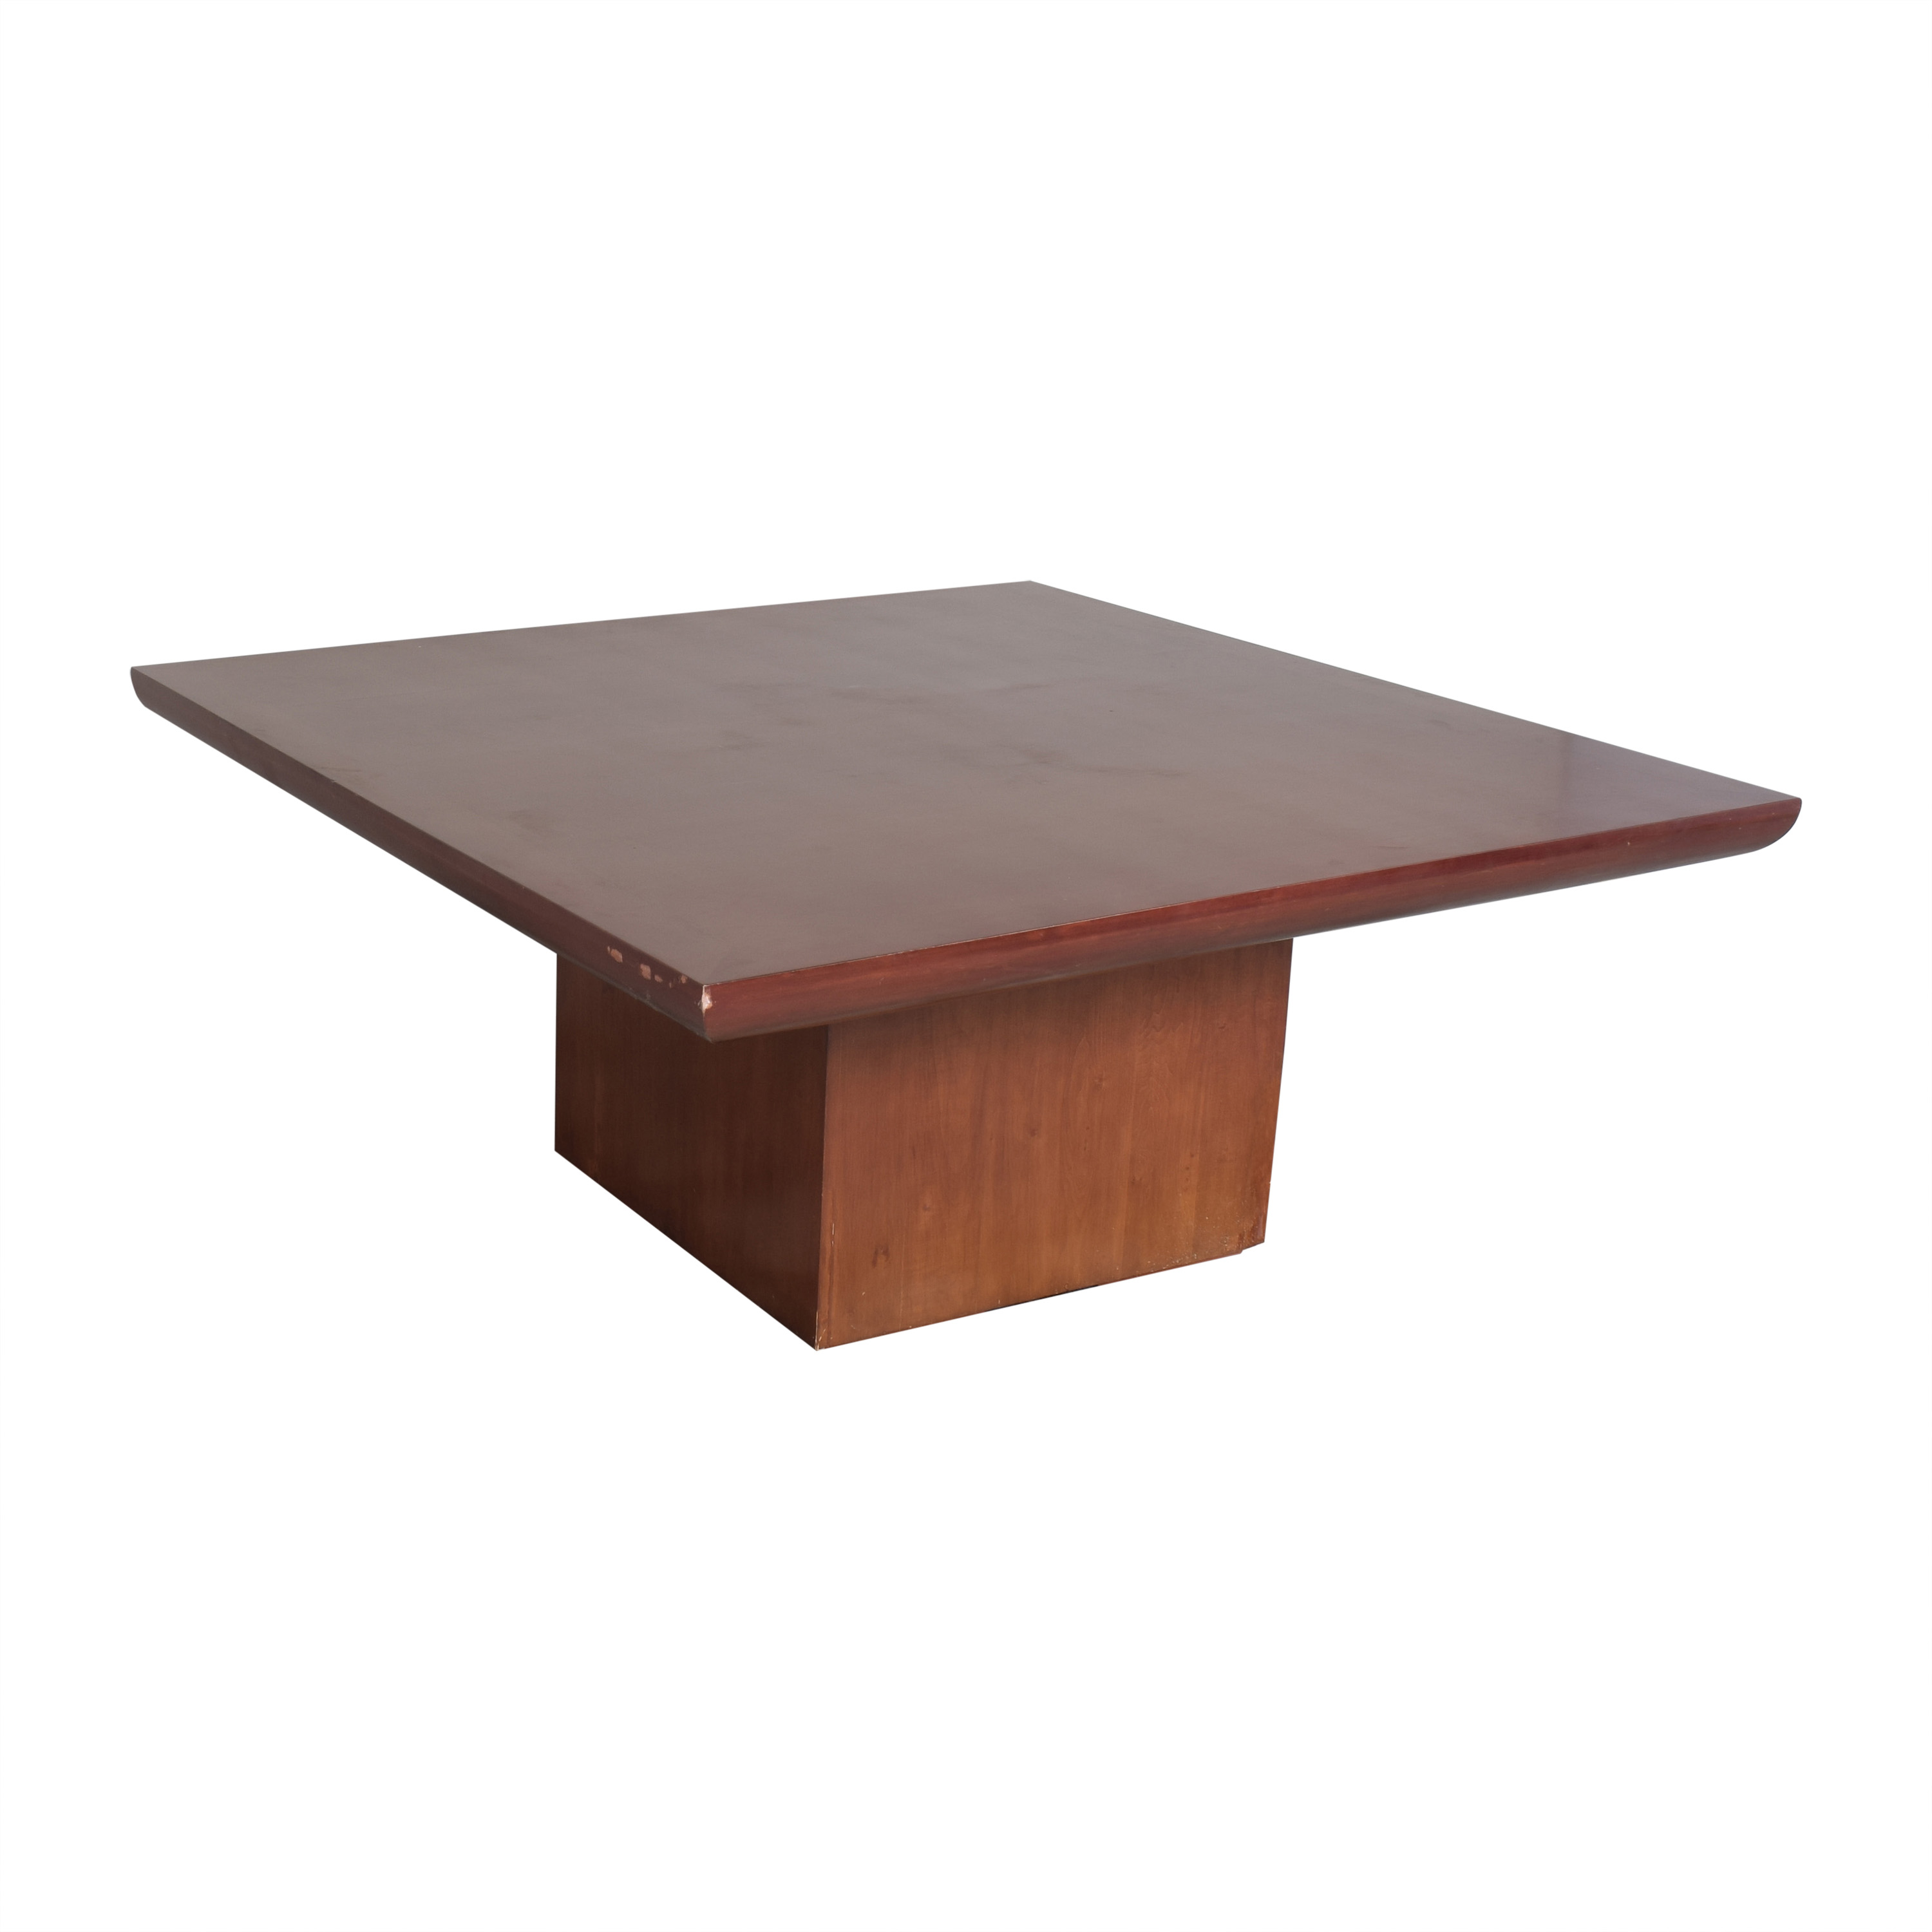 Terres Terres Square Dining Table